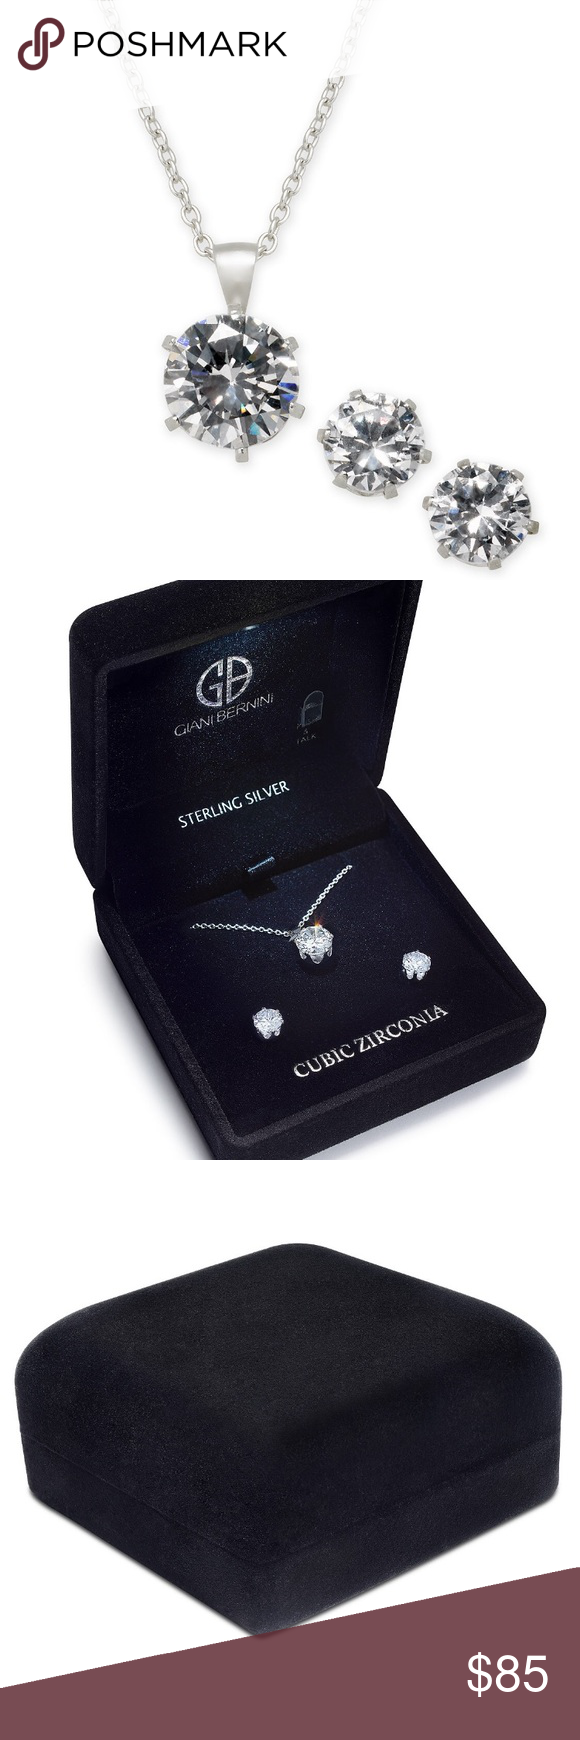 42eb31359 Giani Bernini Cubic Zirconia 2PC 2PC Cubic Zirconia Pendant Necklace & Stud  Earrings Set in Sterling Silver in Recordable Light Up Box • Set in sterling  ...